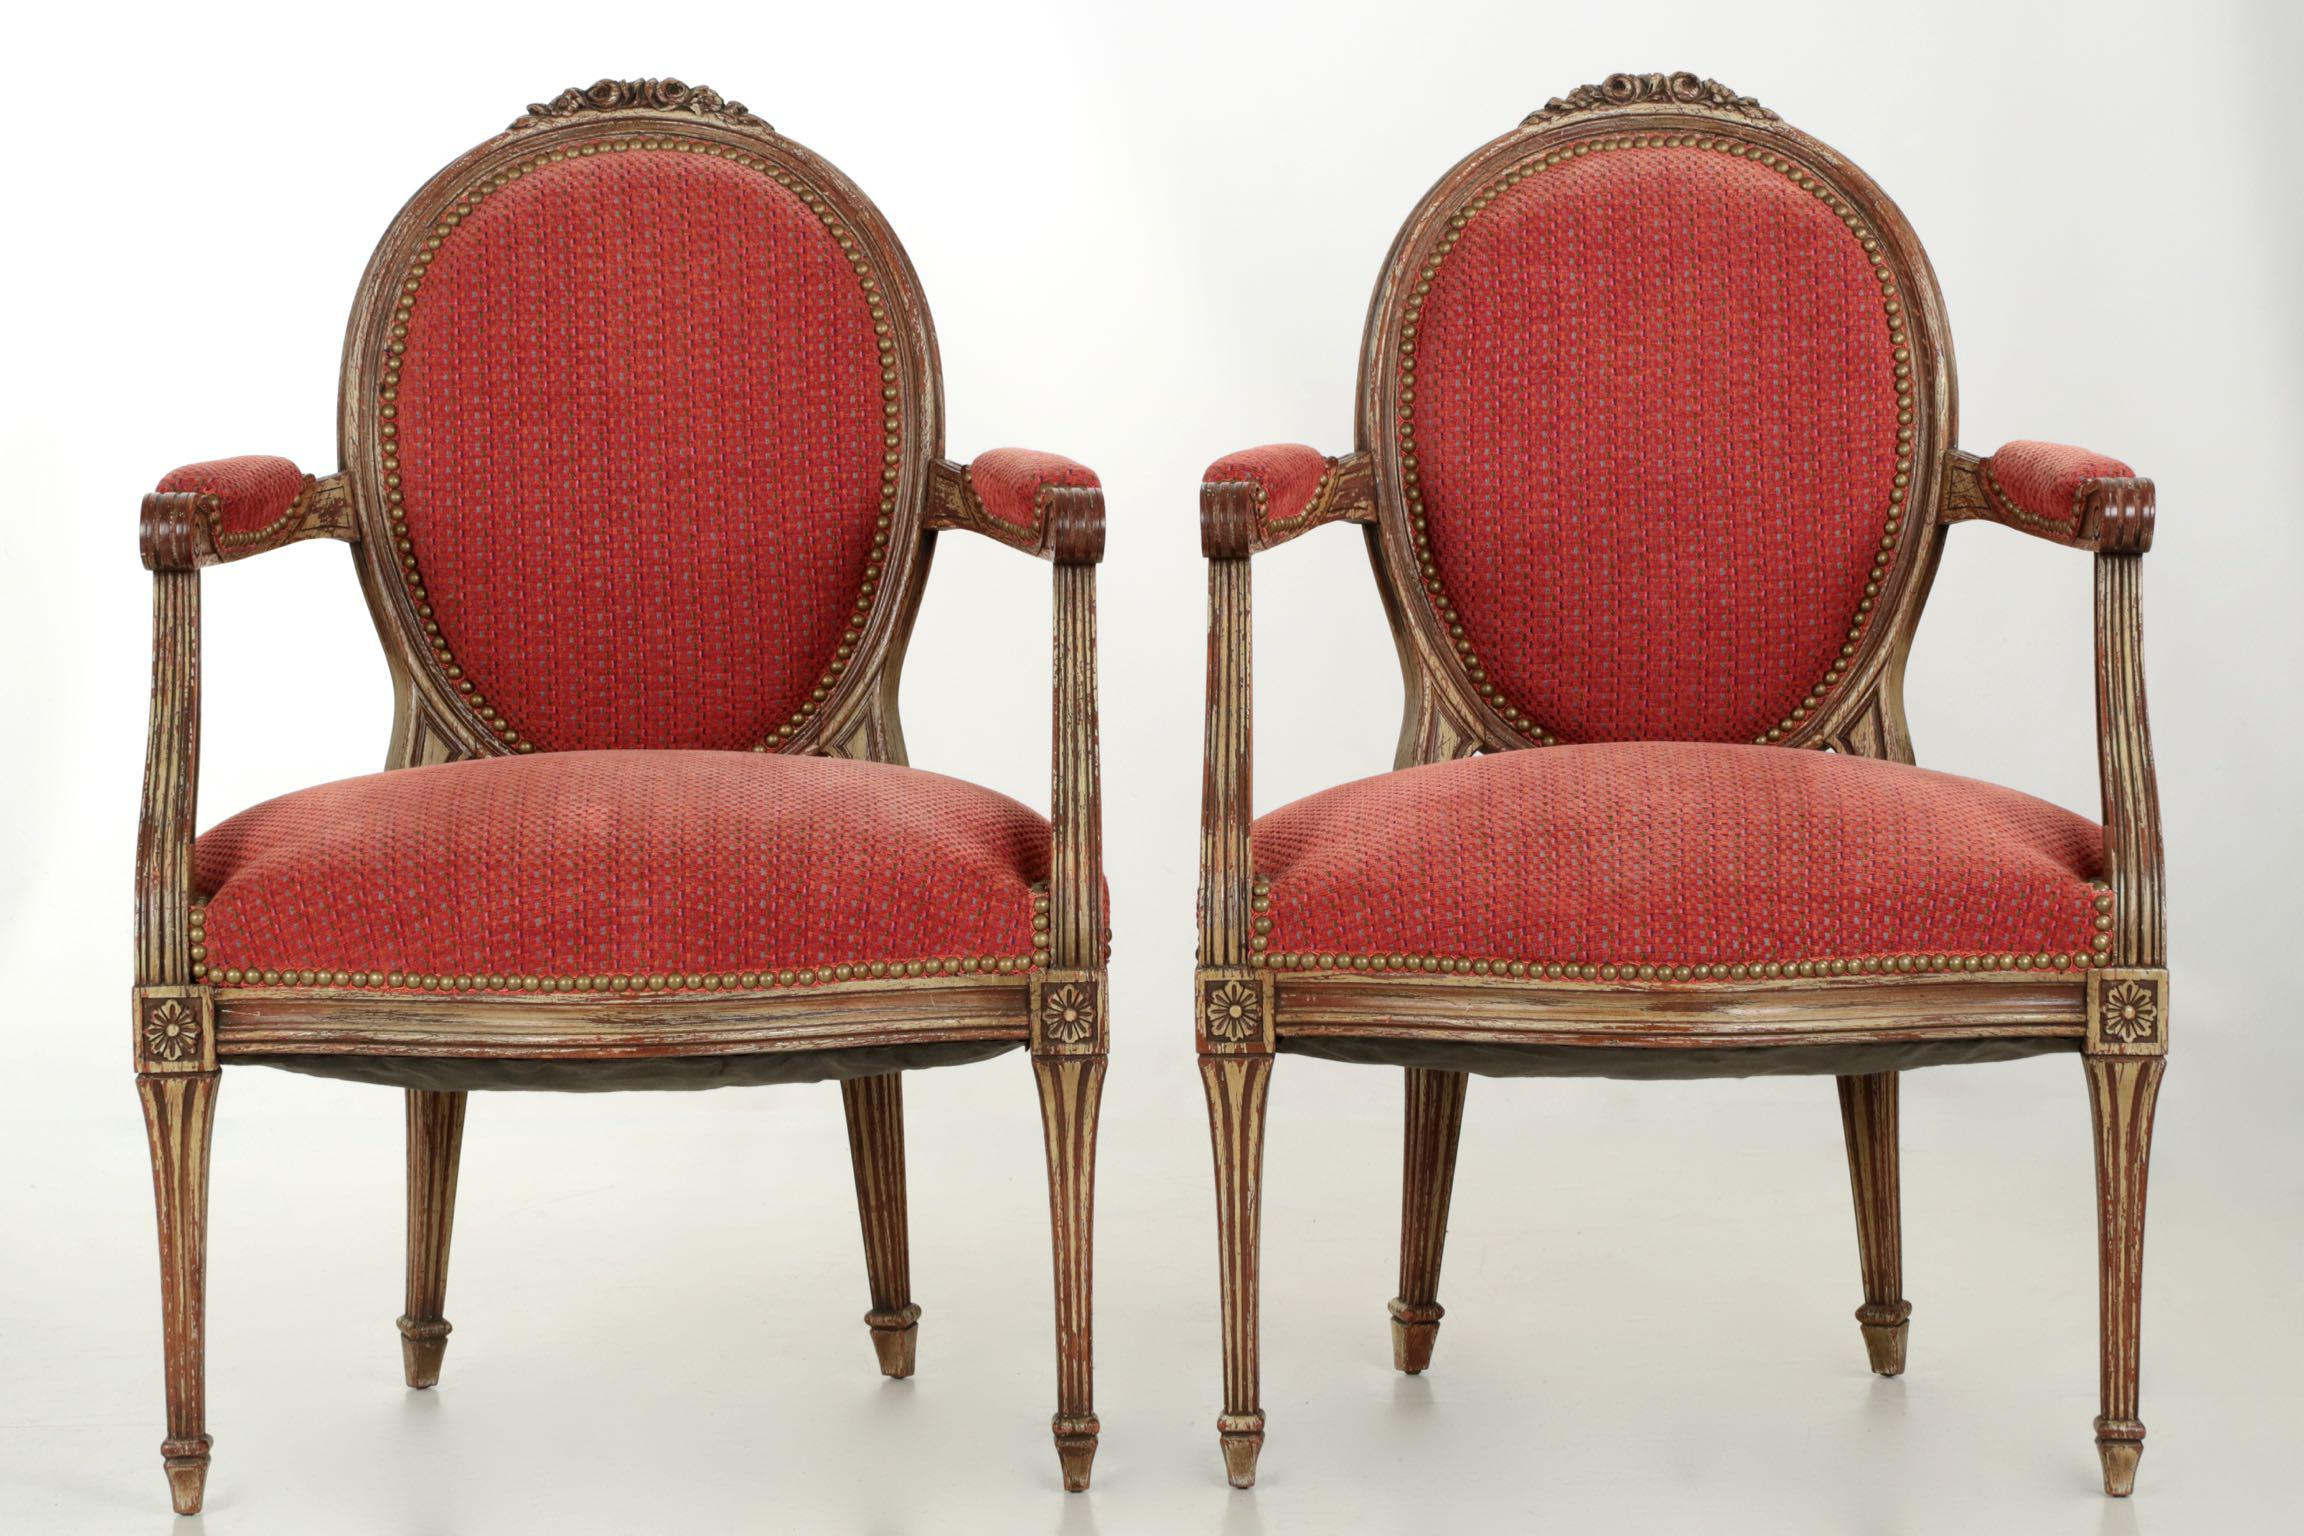 Vintage French Louis XVI Style Gray Painted Fauteuil Arm Chairs a